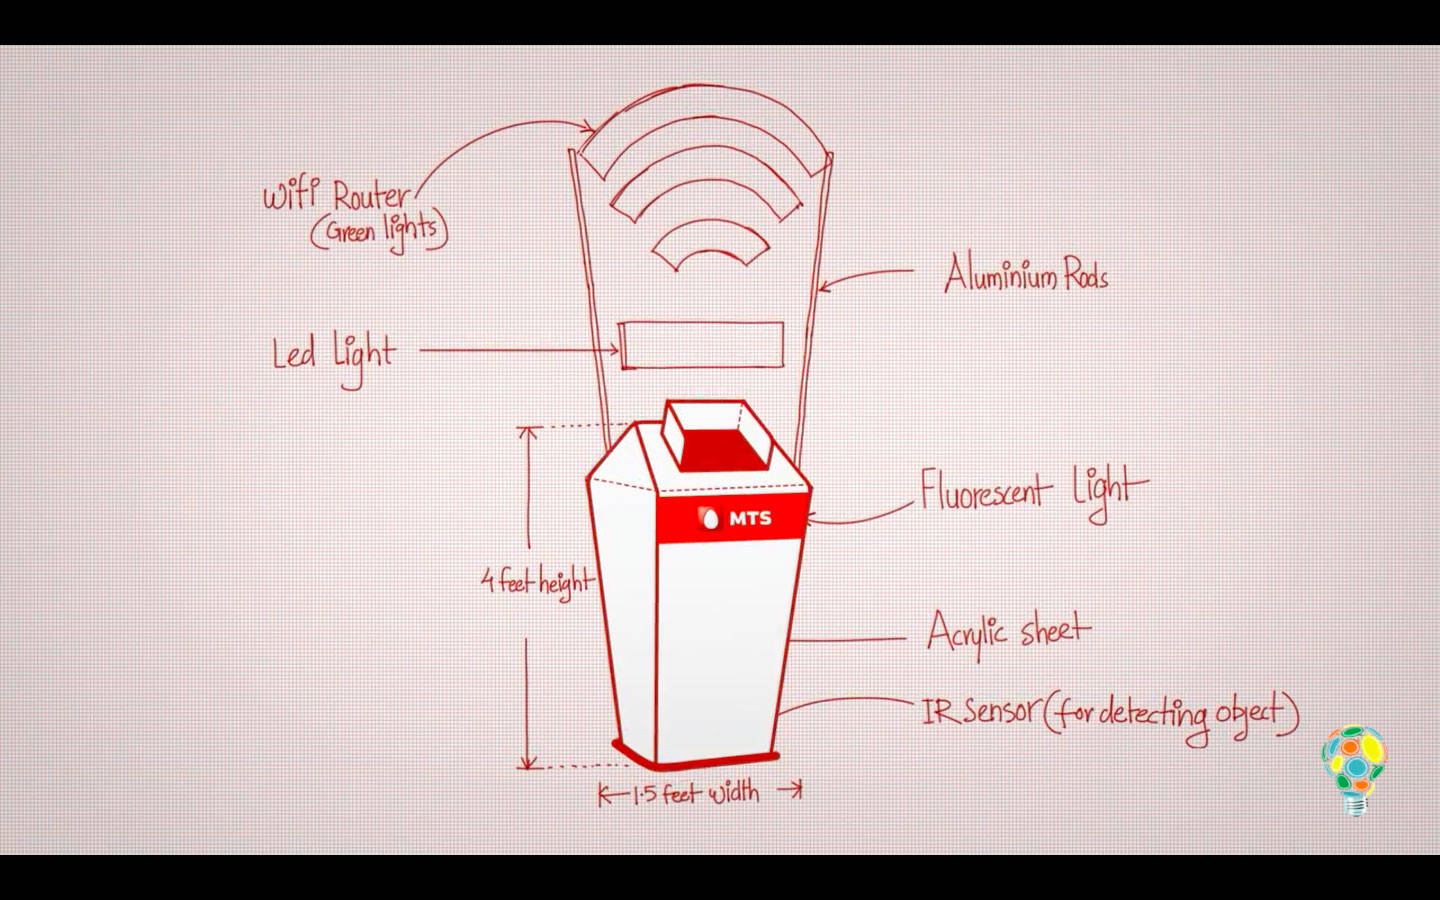 Smart dustbins that give you free WiFi? Not rubbish at all!